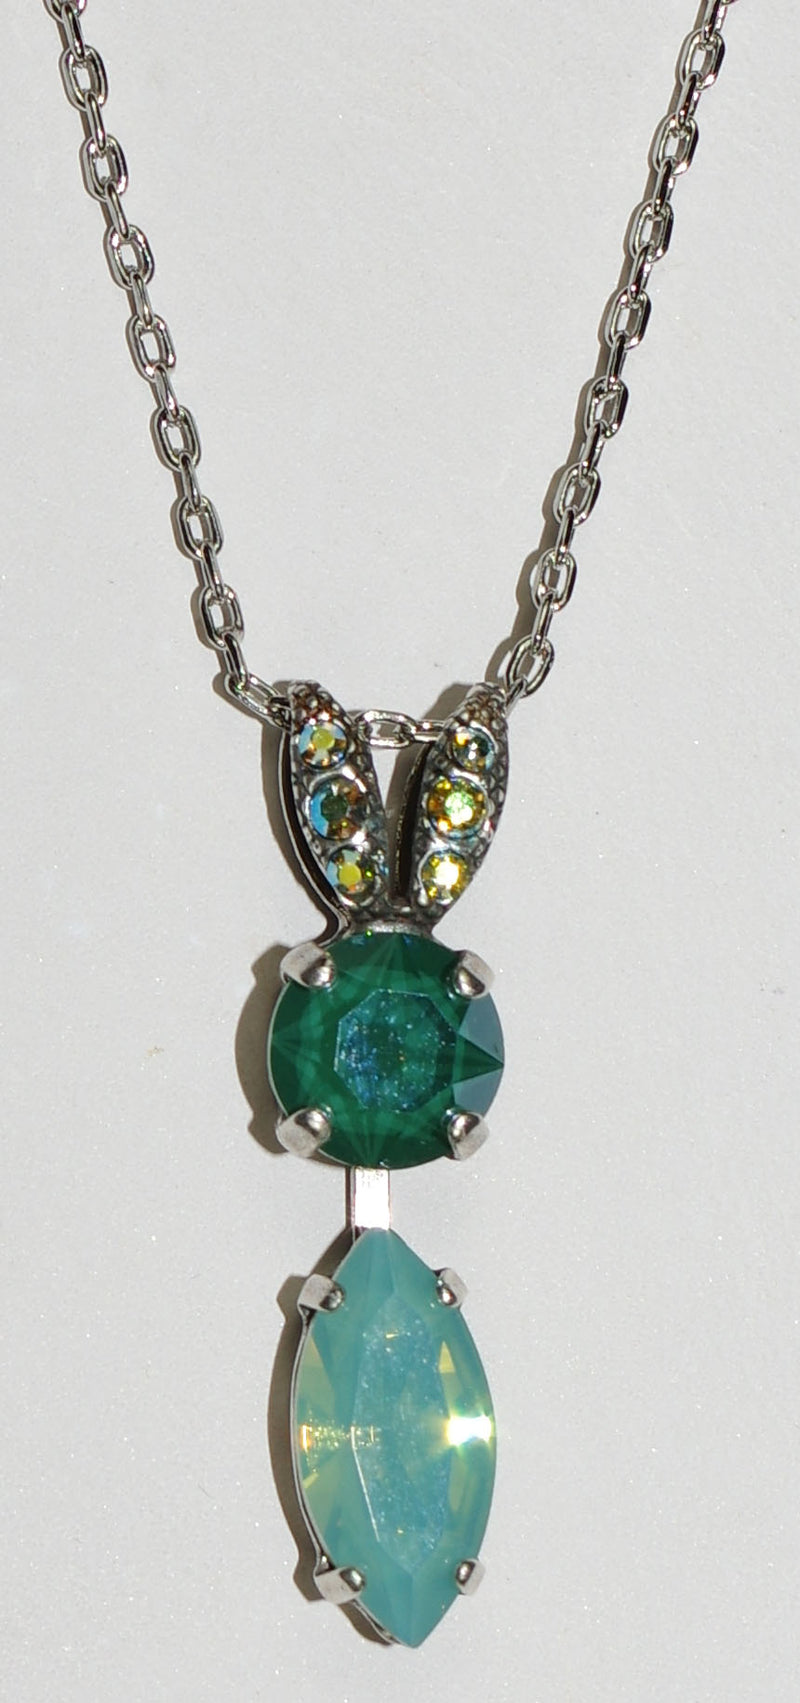 "MARIANA PENDANT FERN: green, pacific opal, a/b stones in 1.25"" pendant, silver setting, 18"" adjustable chain"